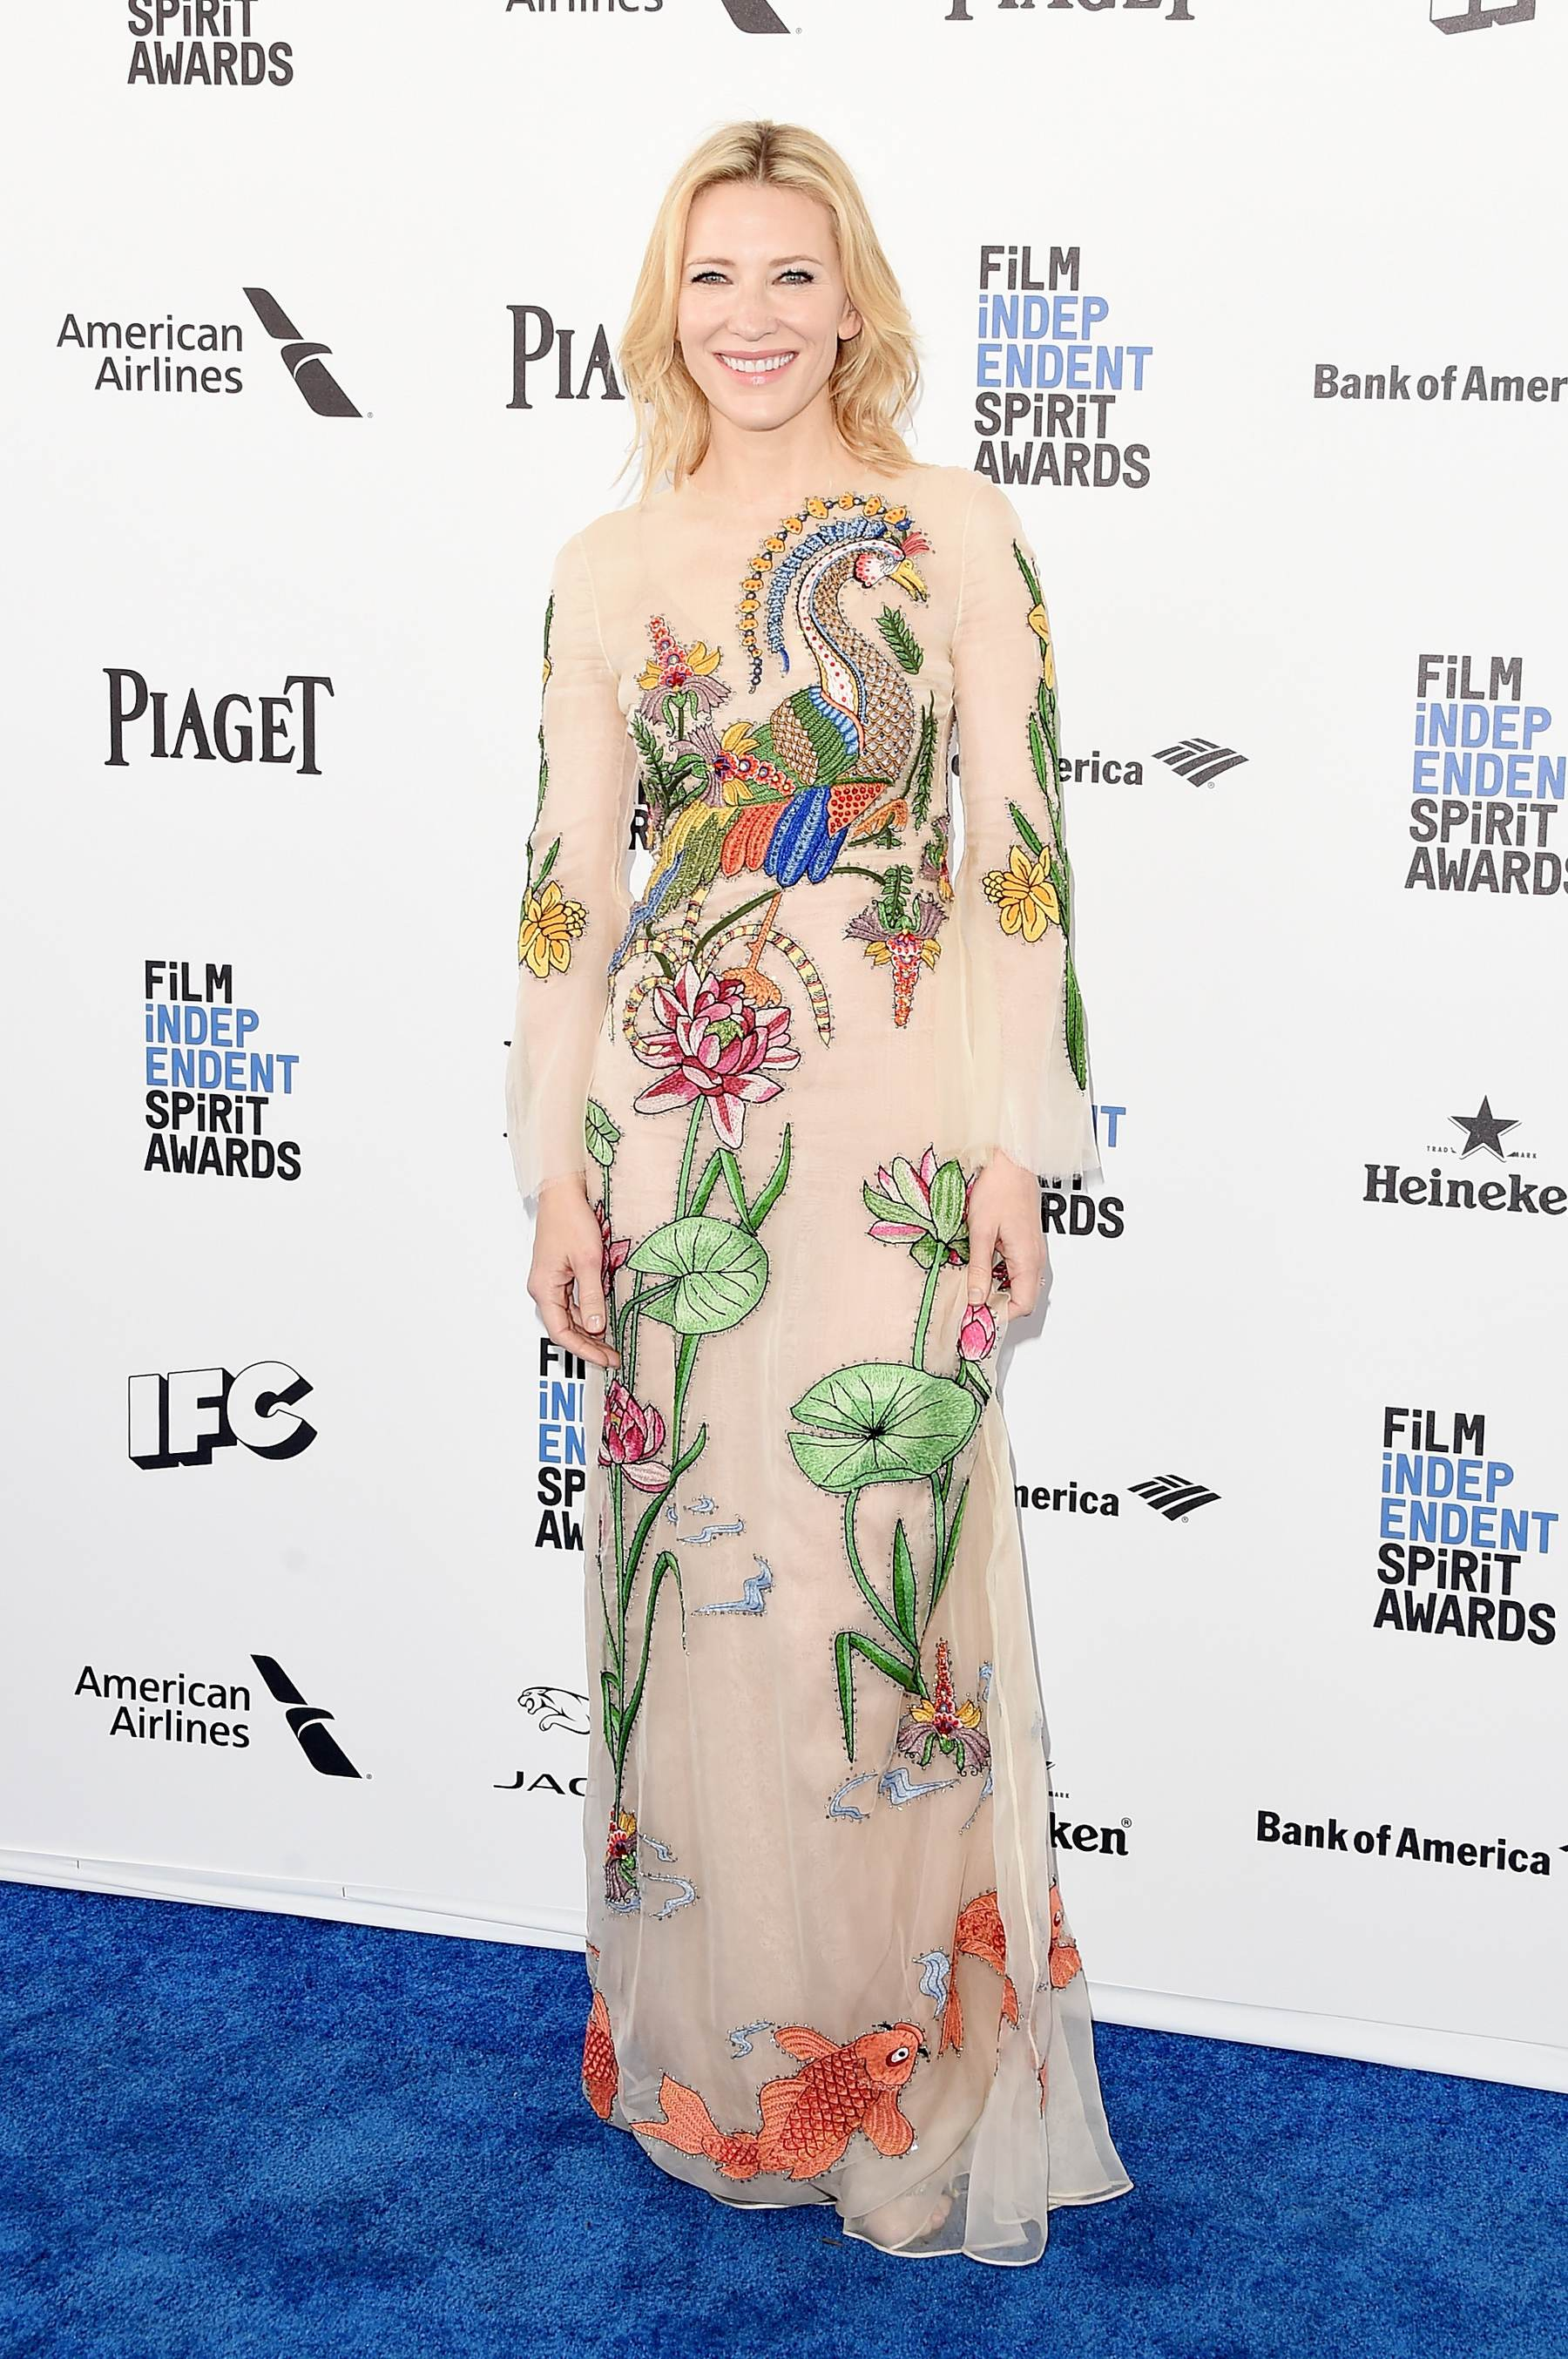 Cate Blanchett at Film Independent Spirit Award-4